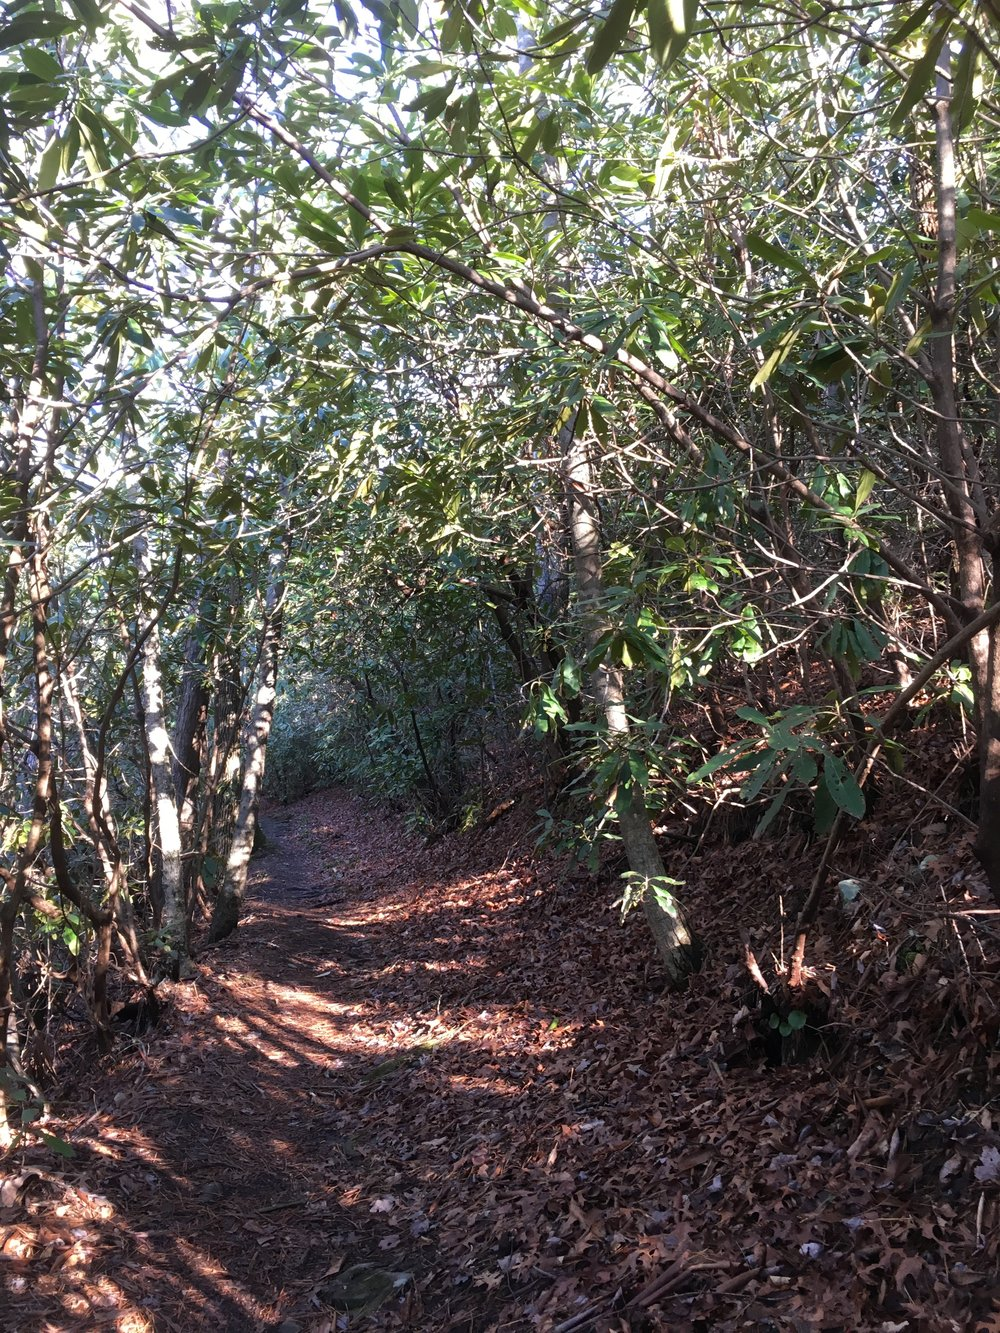 Rhododendron covered trails.